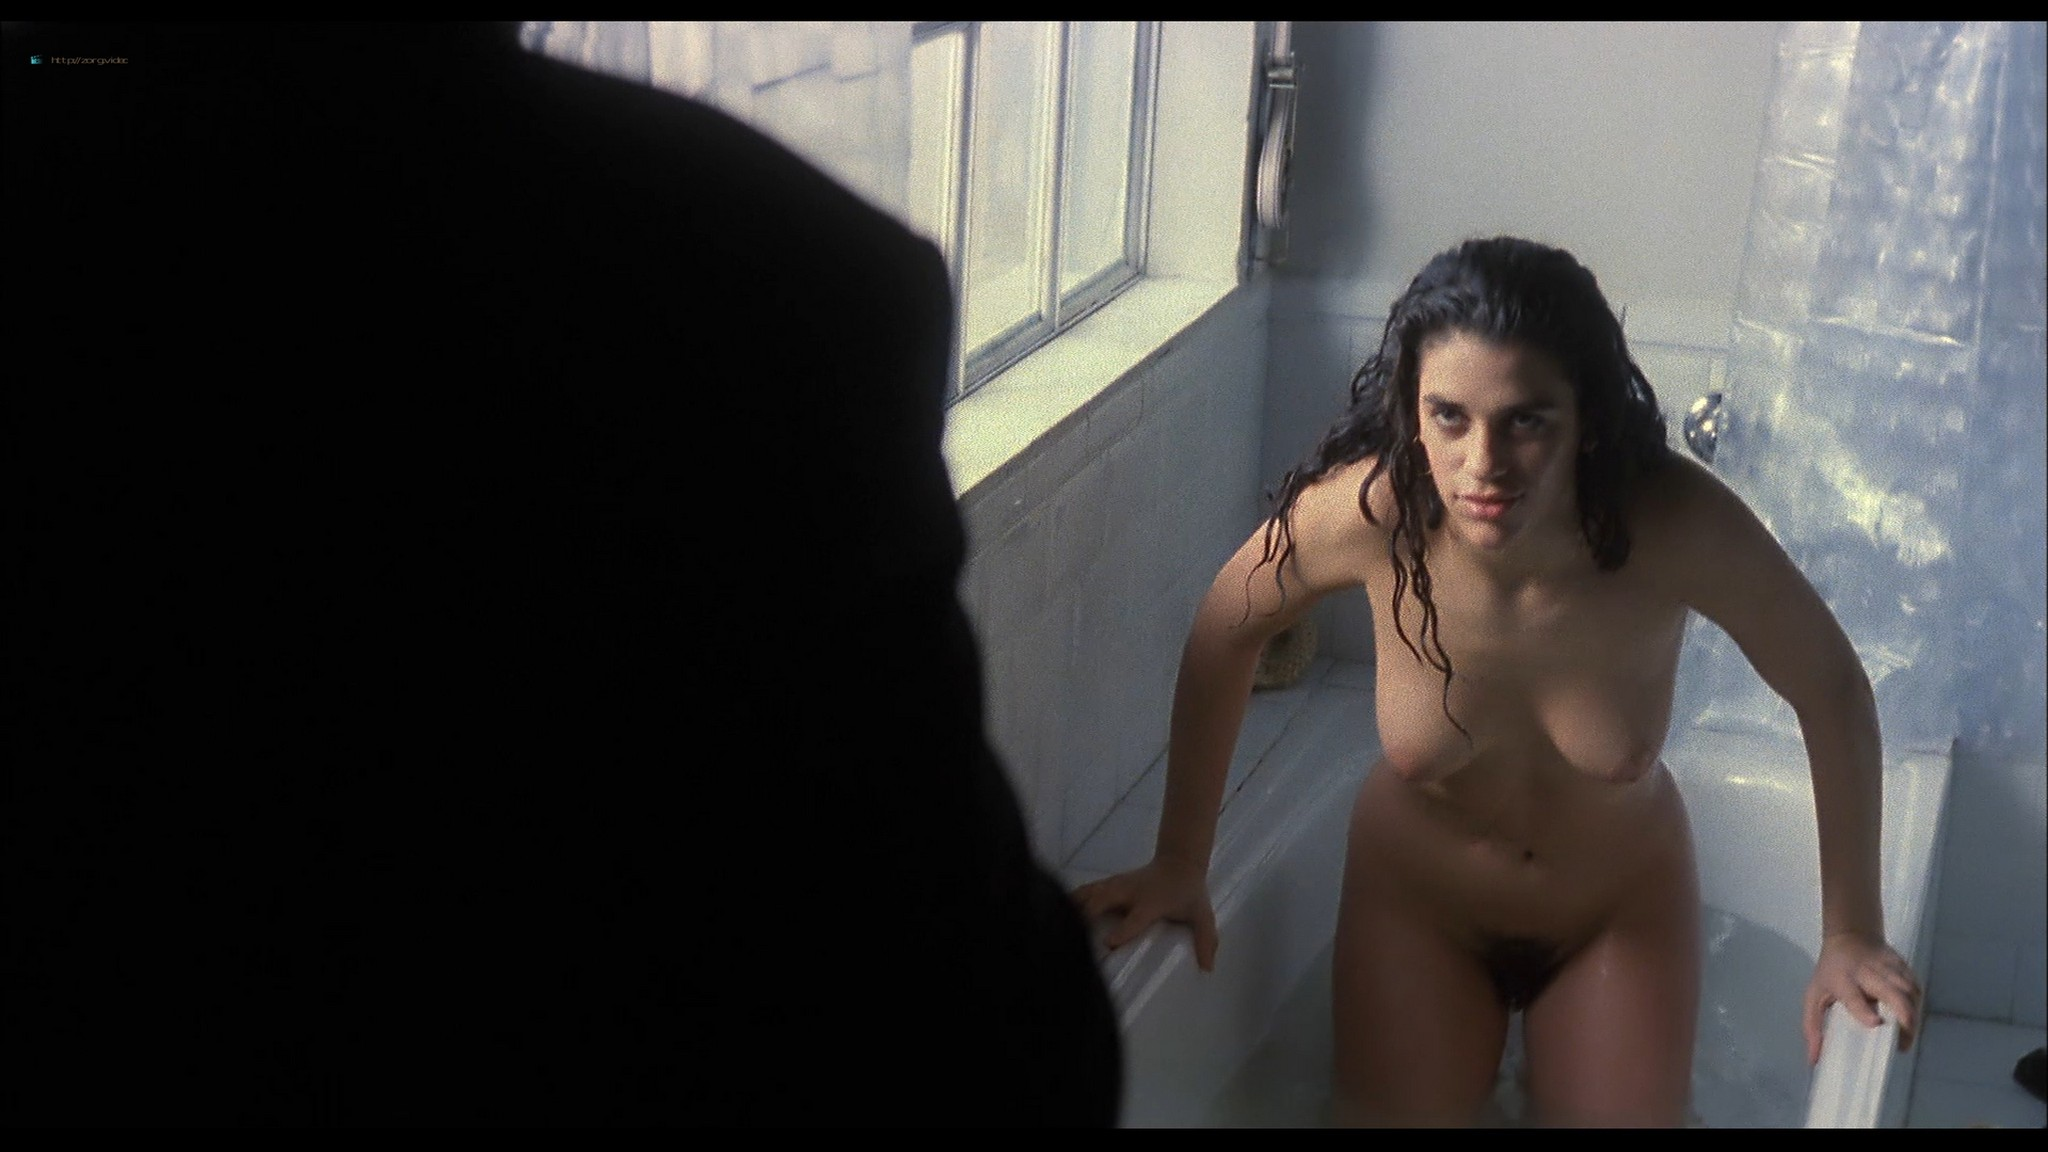 Ruth Gabriel nude full frontal Candela Peña nude too - Días contados (ES-1994) HD 1080p BluRay (r) (16)